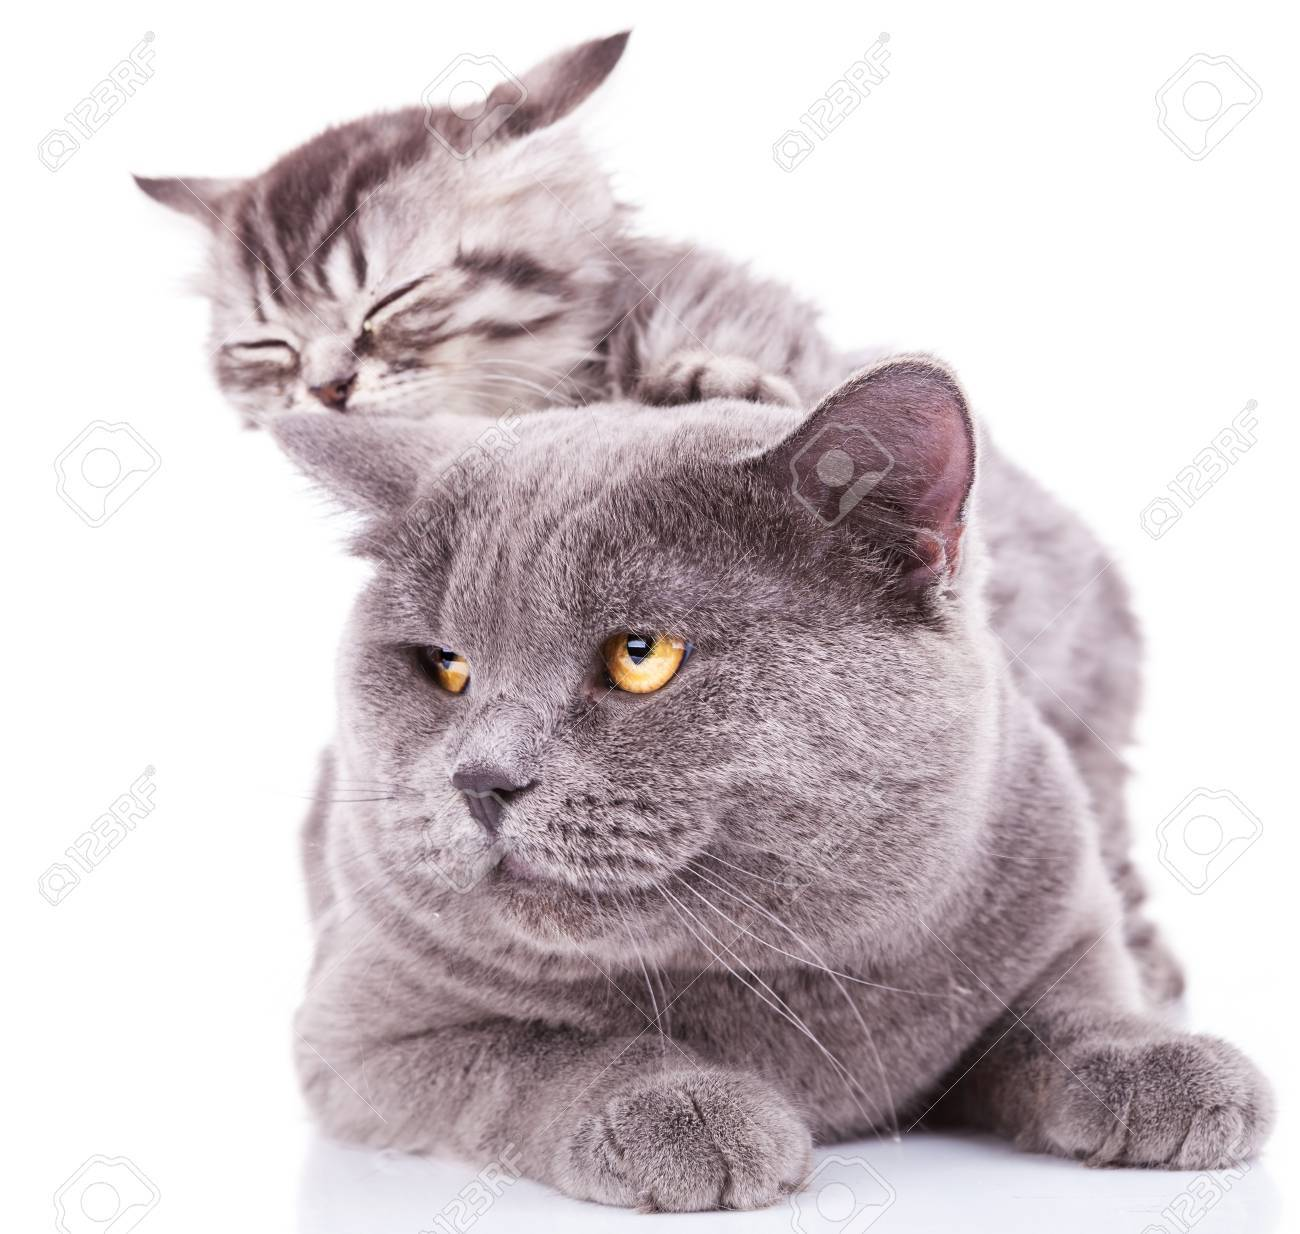 adorable kitten taking a nap on an adult english cat, on white background Stock Photo - 16058282